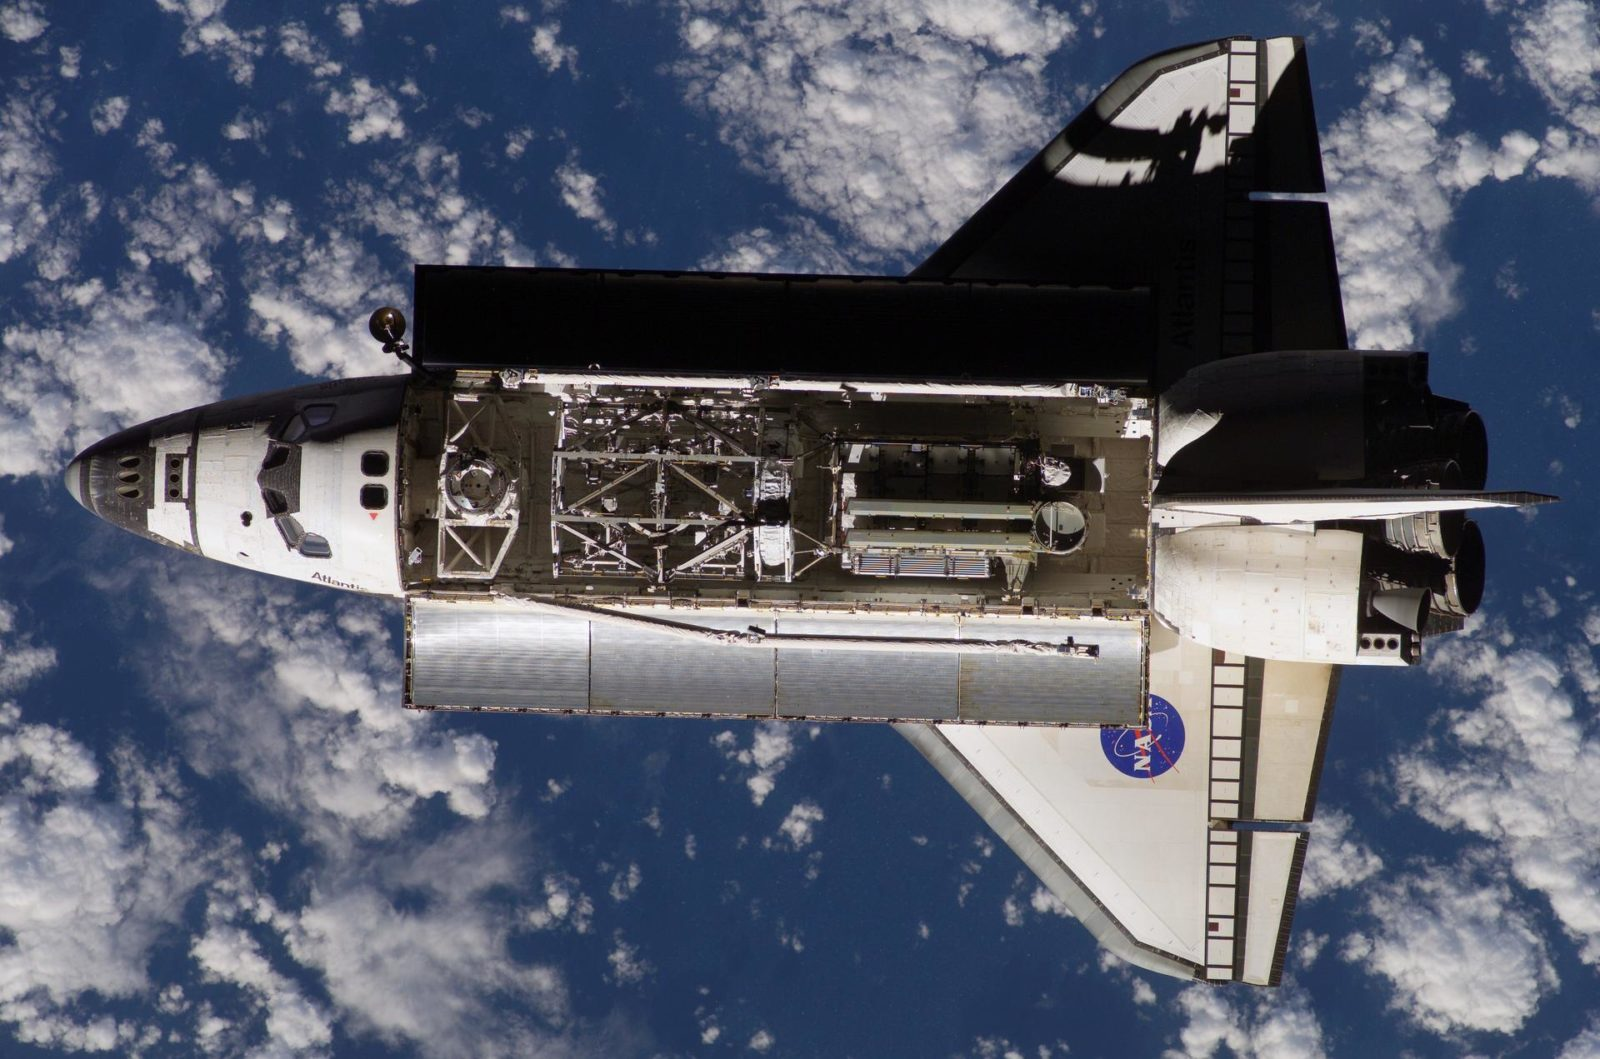 Atlantis and Payload on approach to the ISS during the STS-117 Mission